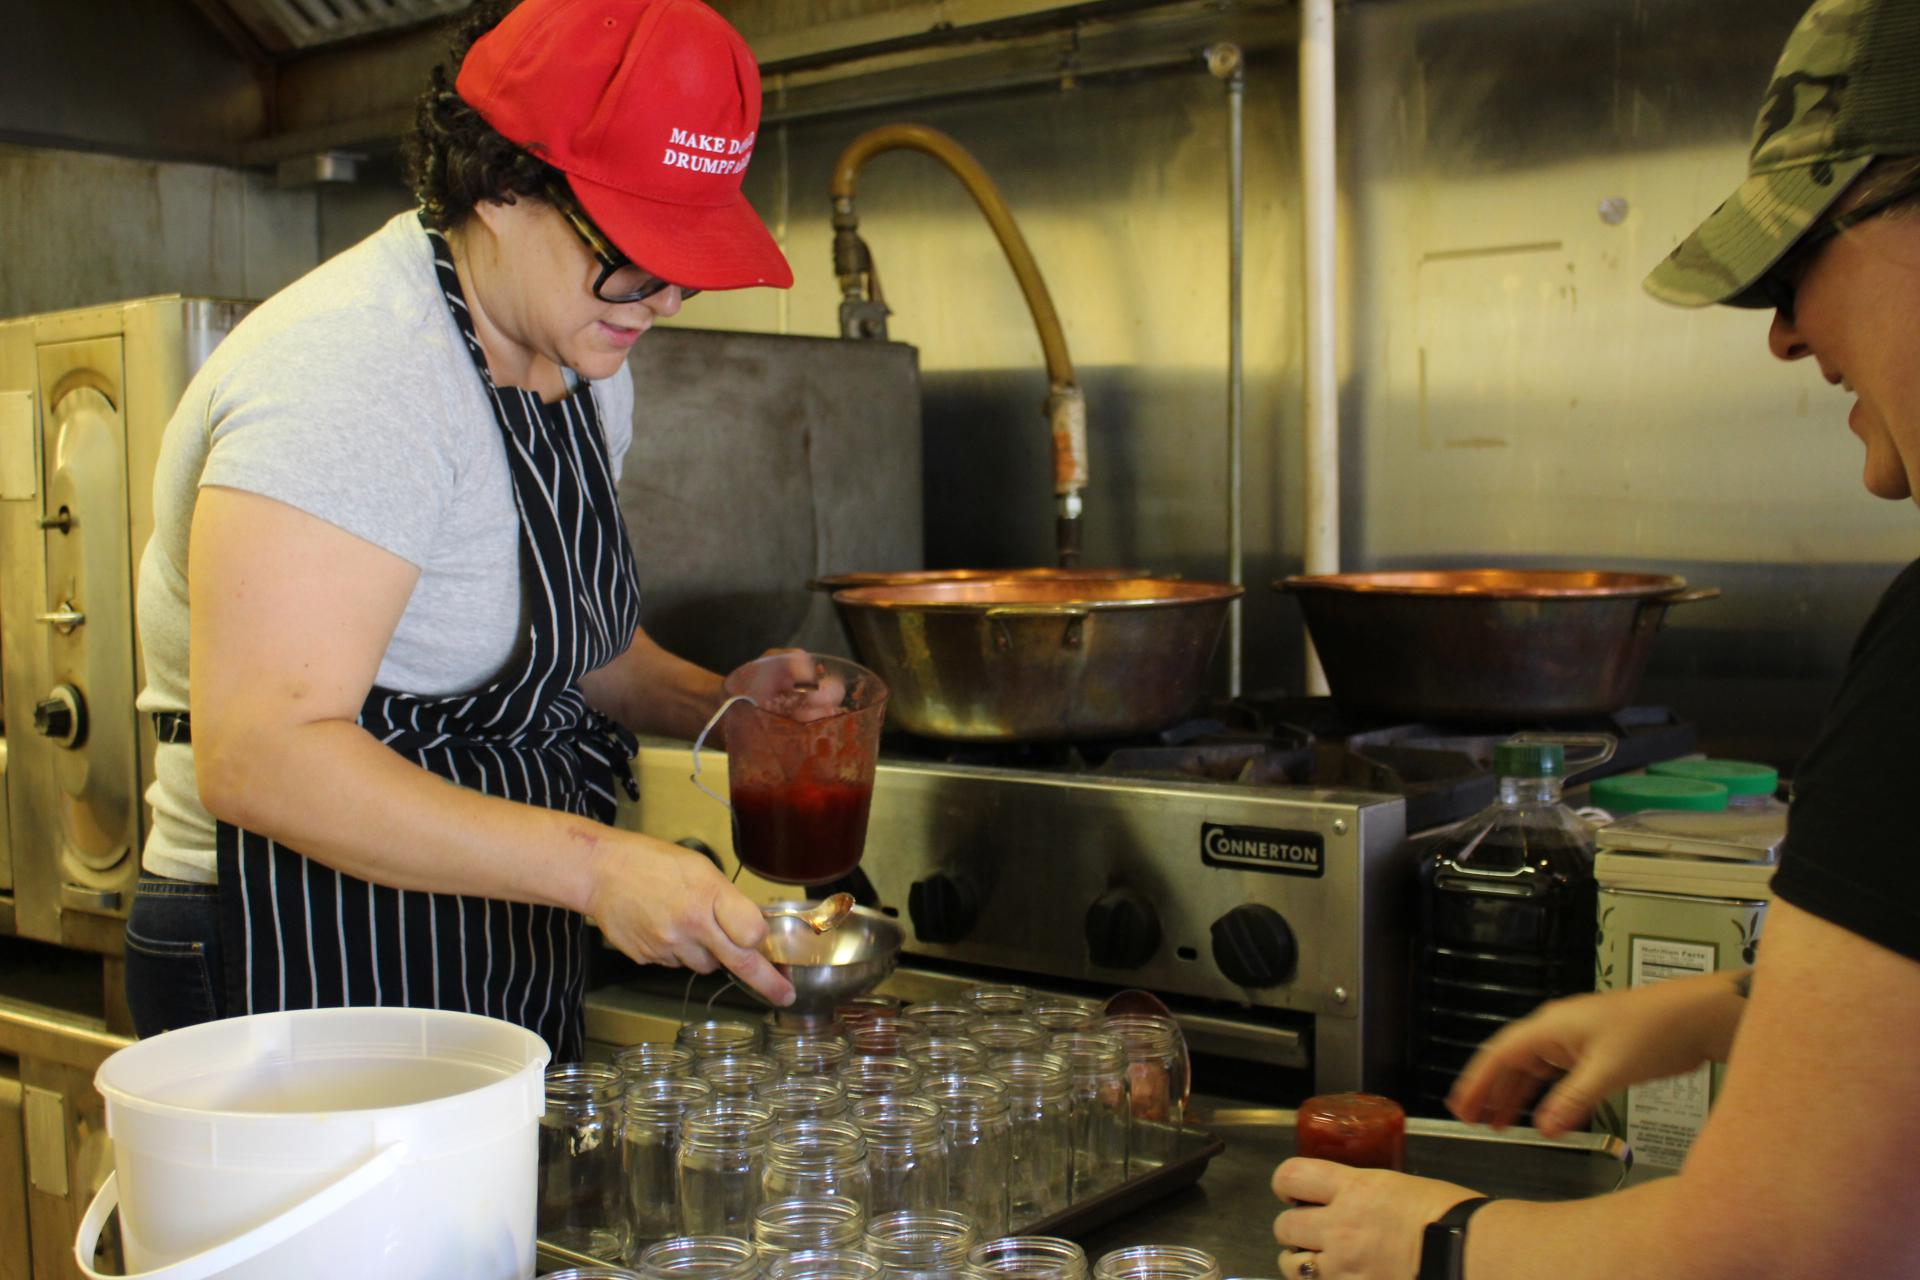 Airbnb Of Kitchens' Give Local Food